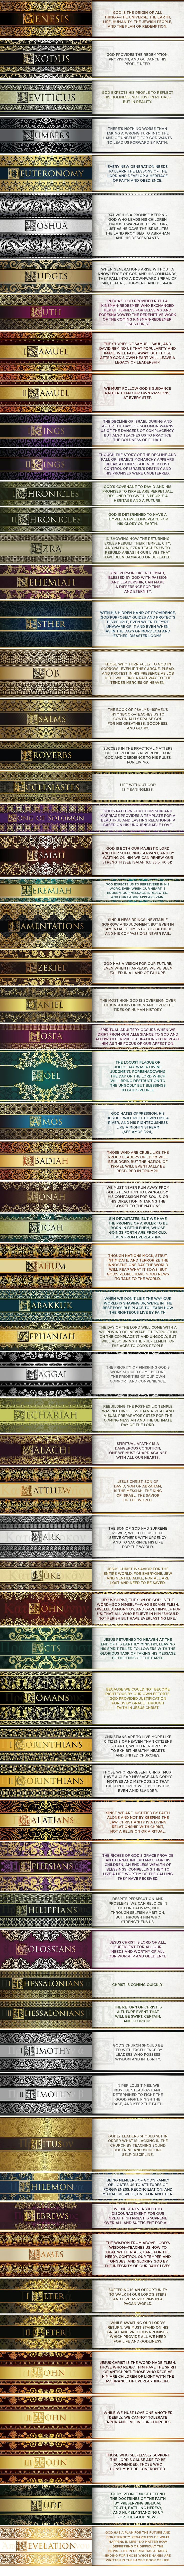 Each book of the Bible with a brief synopsis.